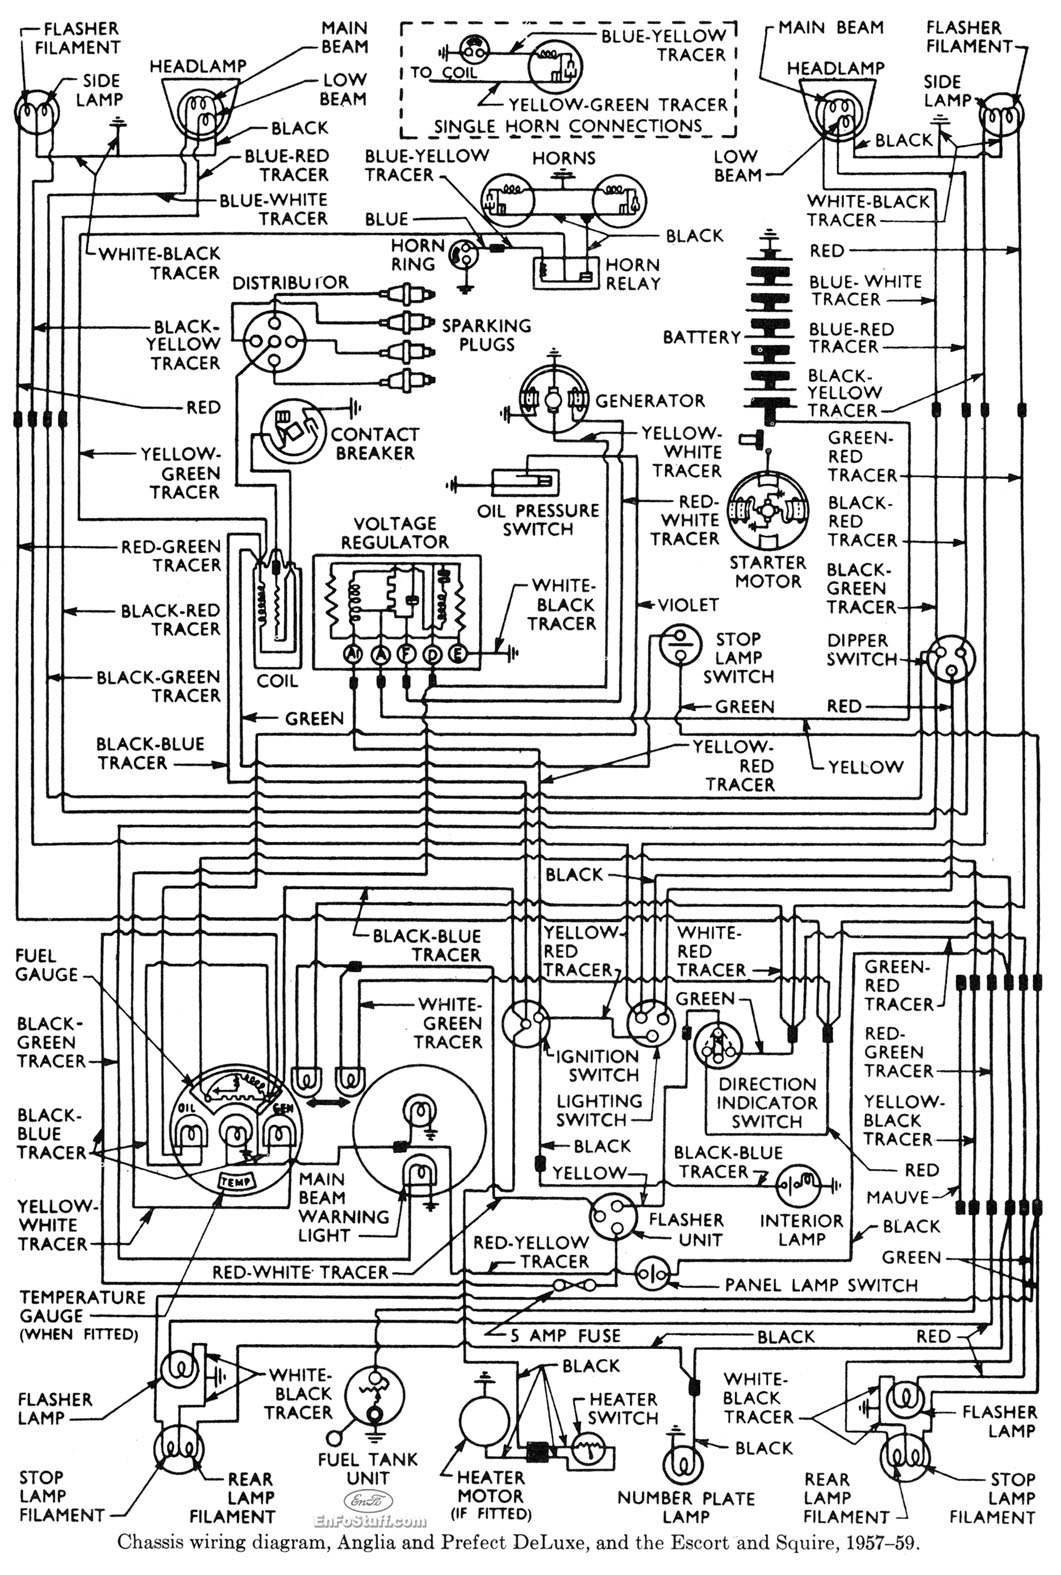 ford anglia prefect escort squire 1957 59 wiring diagram?resize\=665%2C987 columbia par car wiring diagram 2008 columbia par car motor Club Car Wiring Diagram Gas Engine at gsmx.co